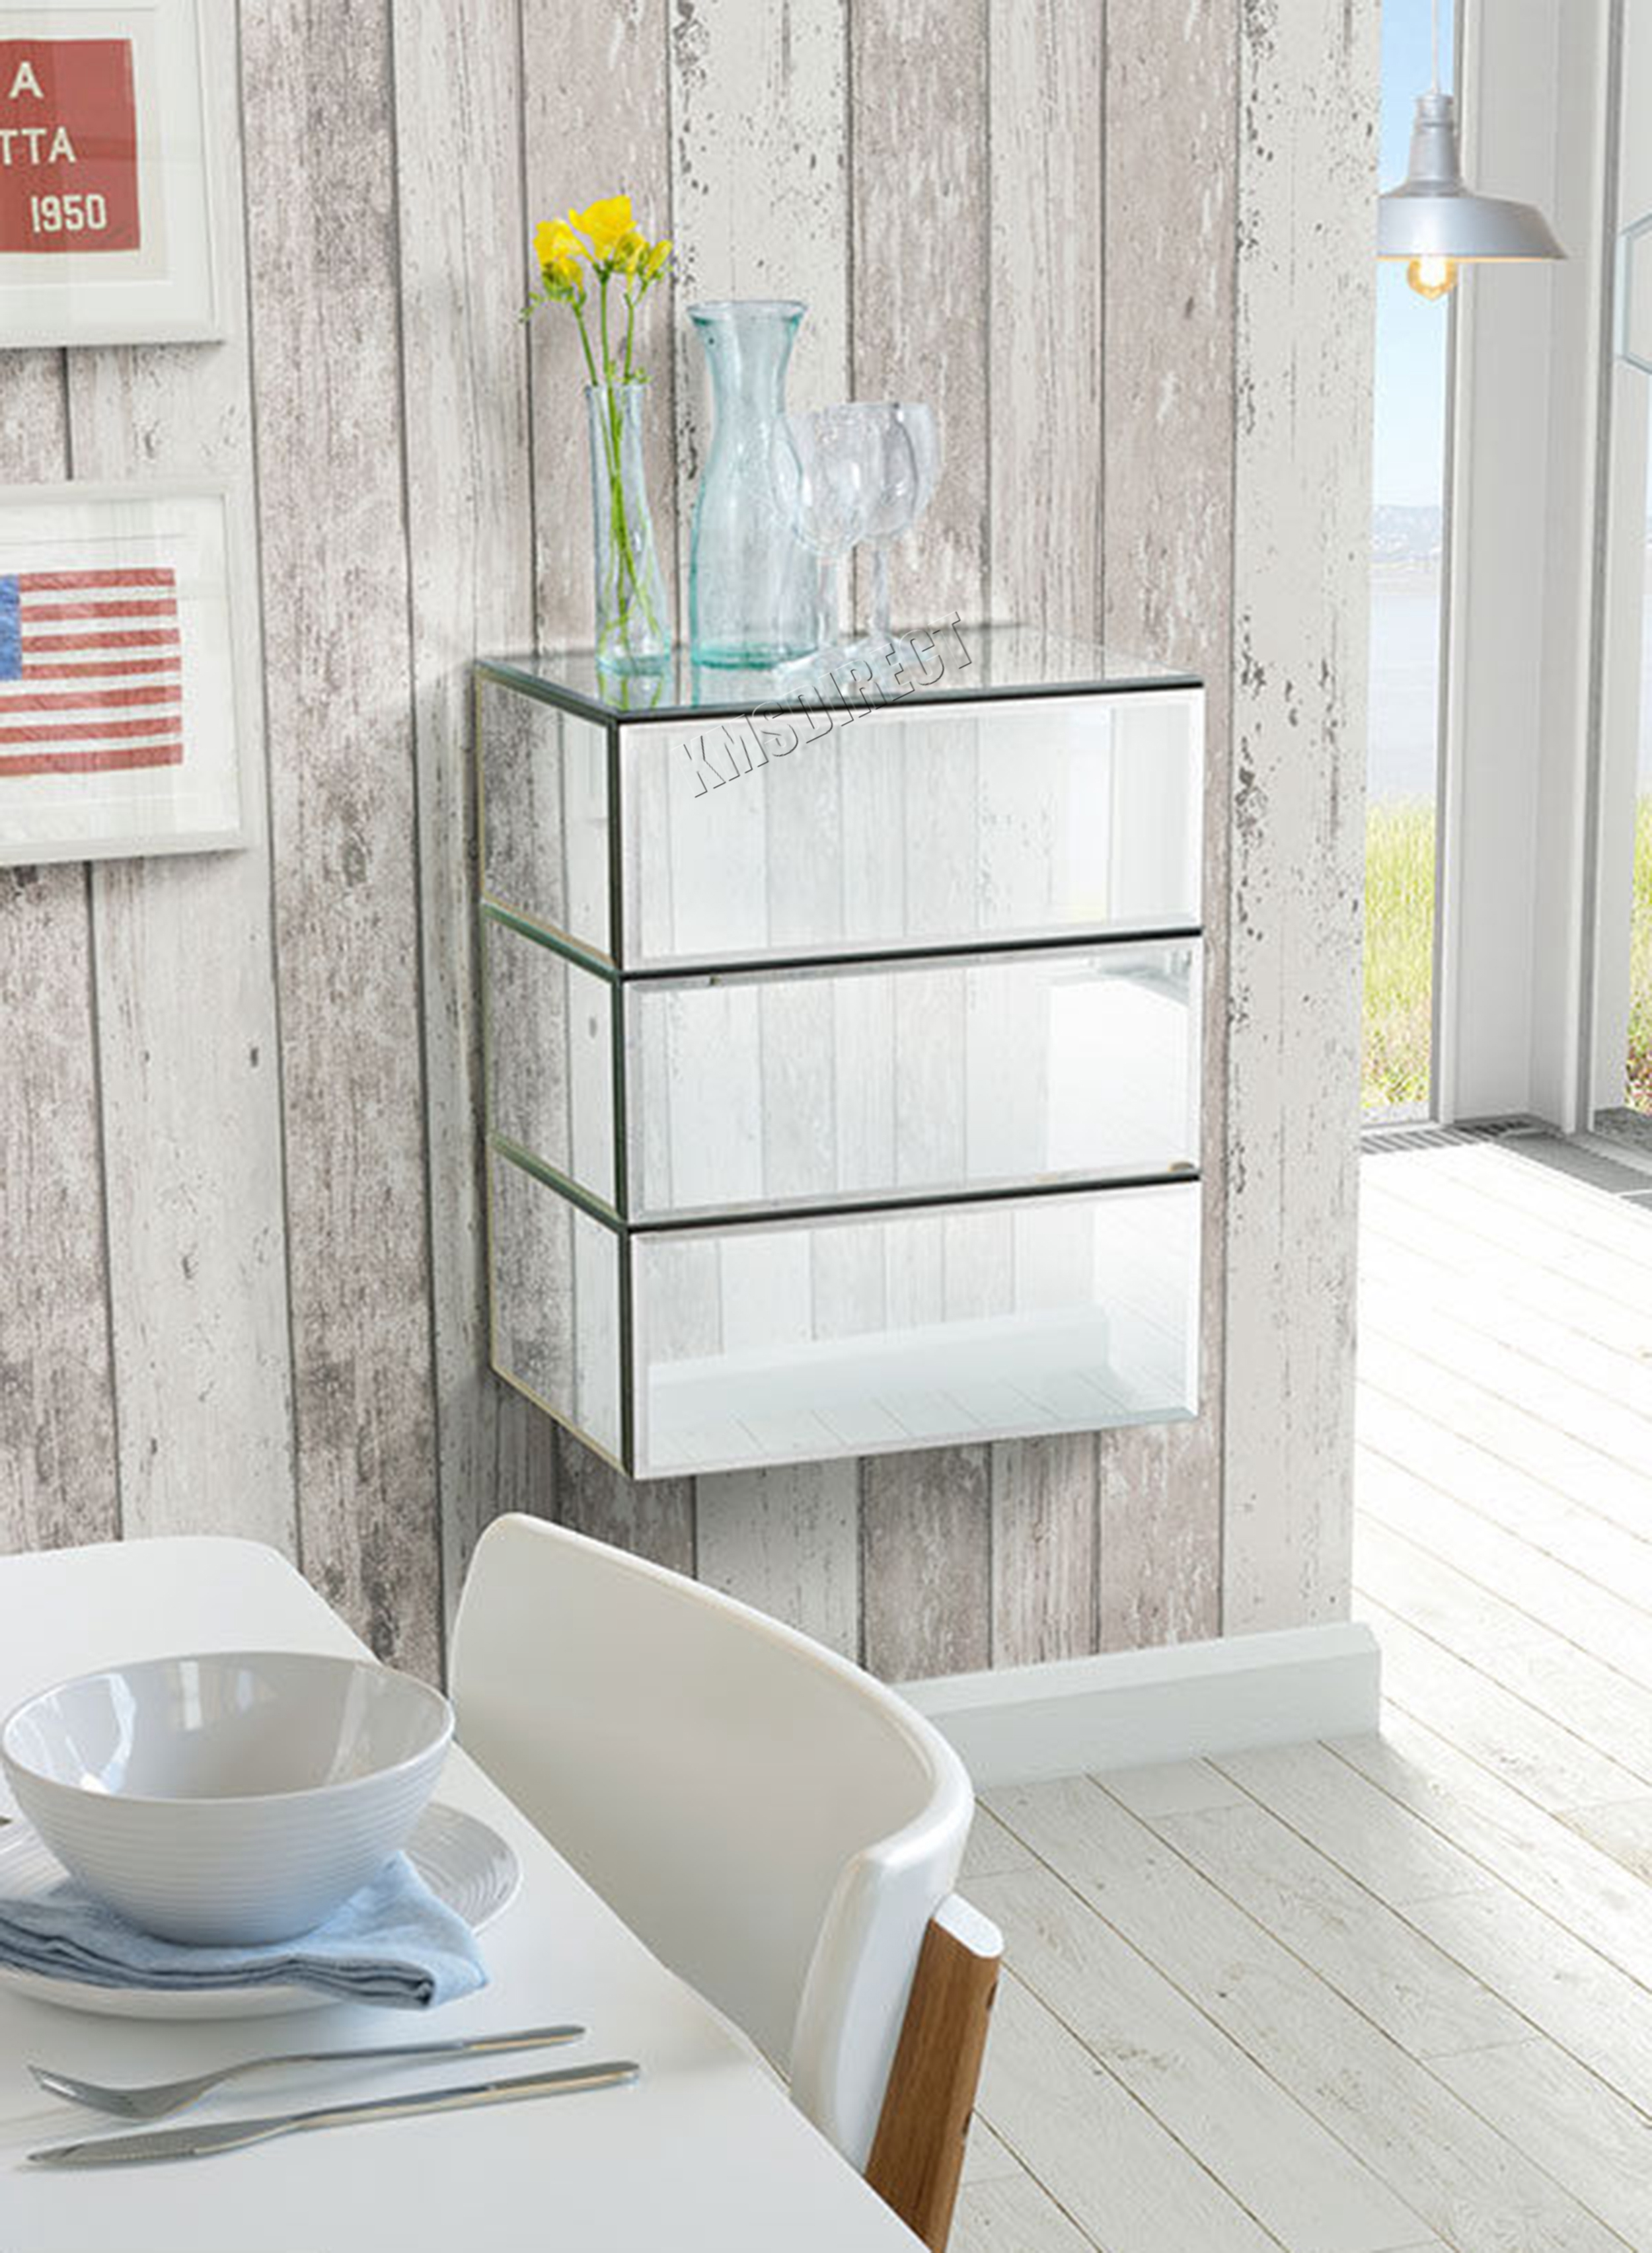 WestWood Mirrored Furniture Glass Floating Bedside Cabinet Table